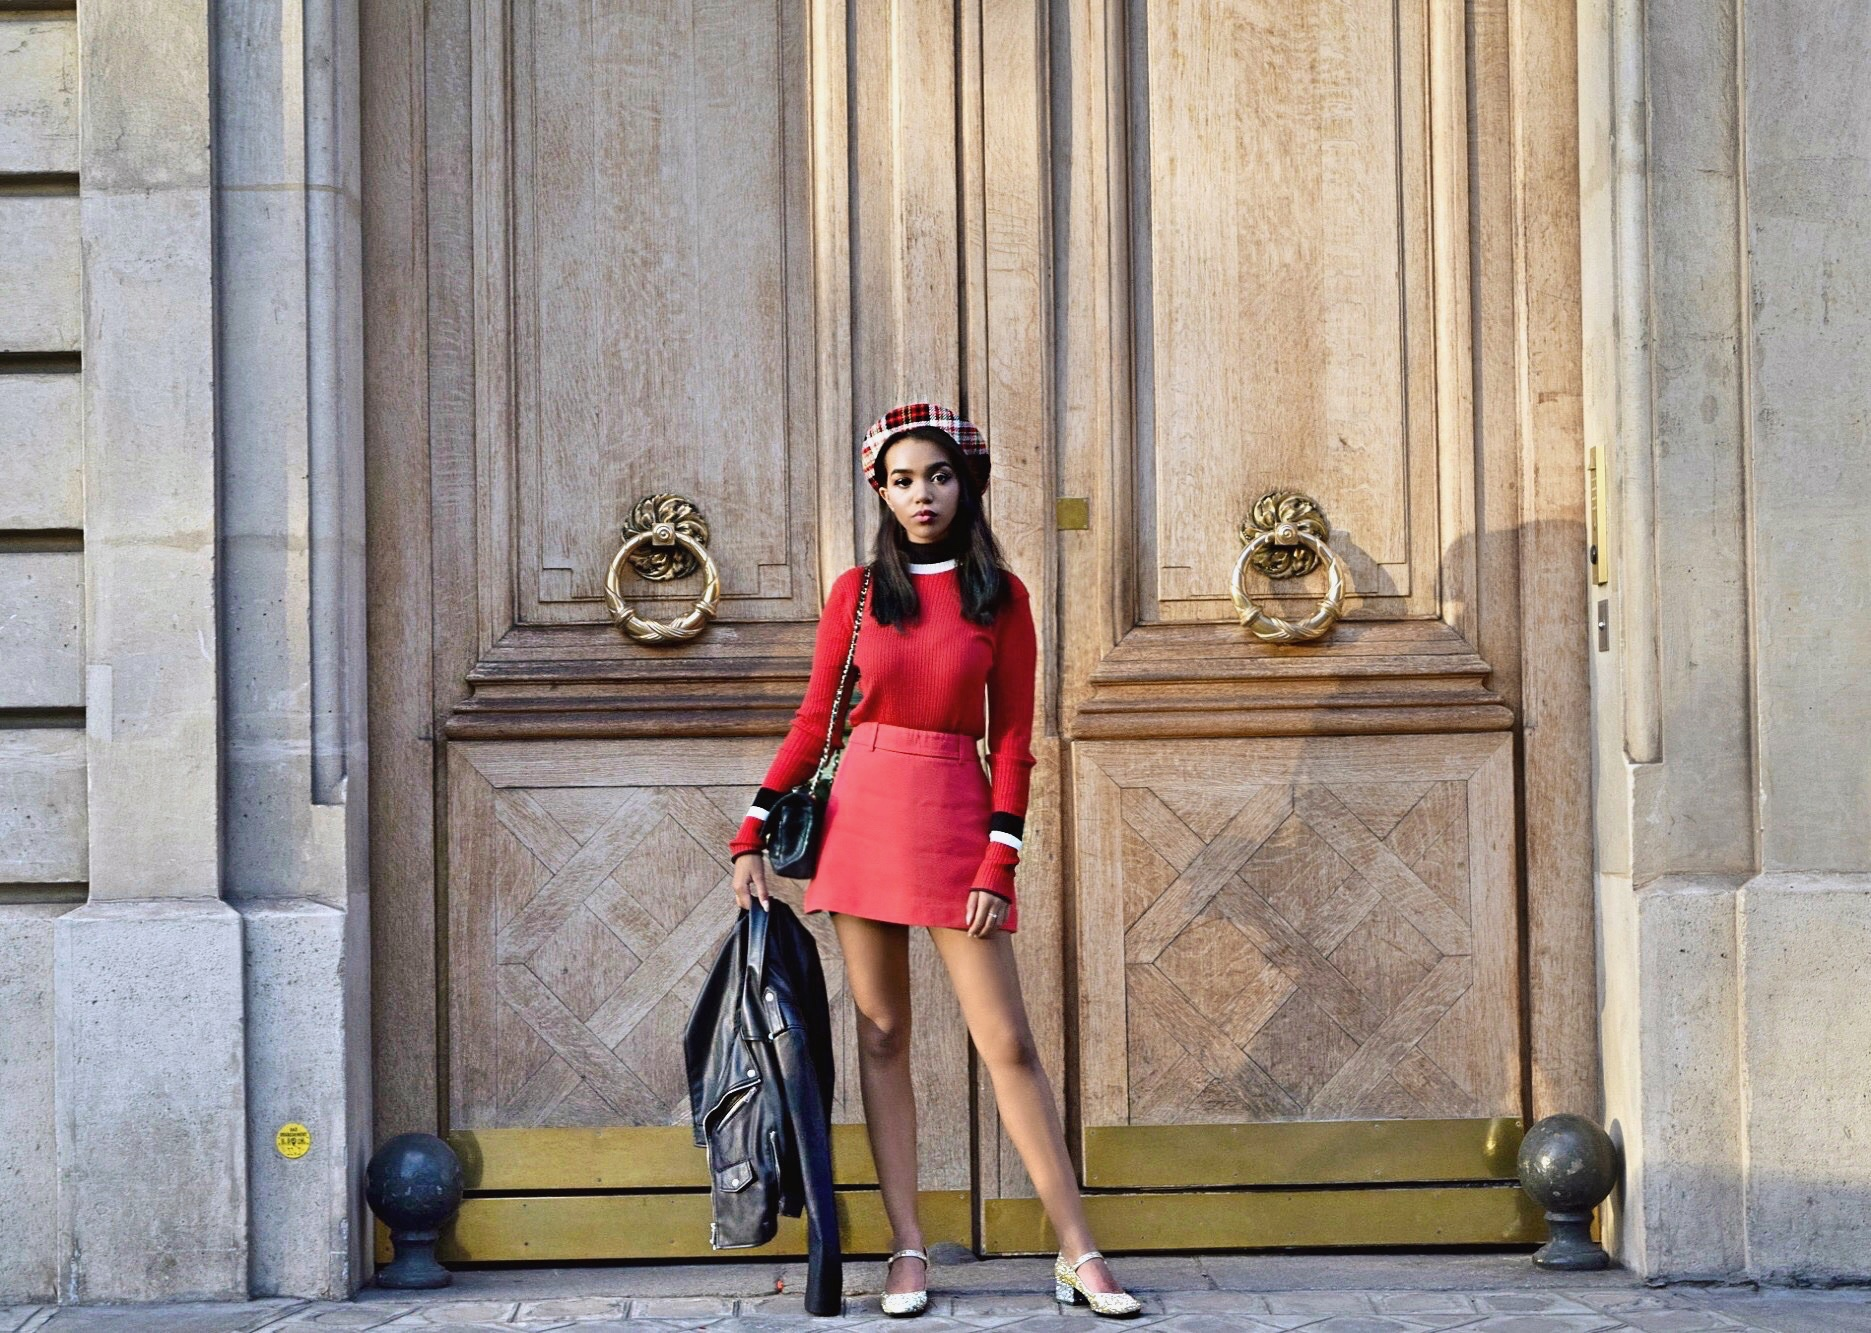 Bonjour Paree // Paris Day 1 Travel Diary // The Eiffel Tower // Red Zara Sweater + Red Miu Miu Mini Skirt // Saint Laurent Glitter Mary Janes // Zara Leather Motorcycle Jacket // Prada Plaid Beret // Chanel Classic Black Flap Bag // Los Angeles Fashion Blogger Daphne Blunt